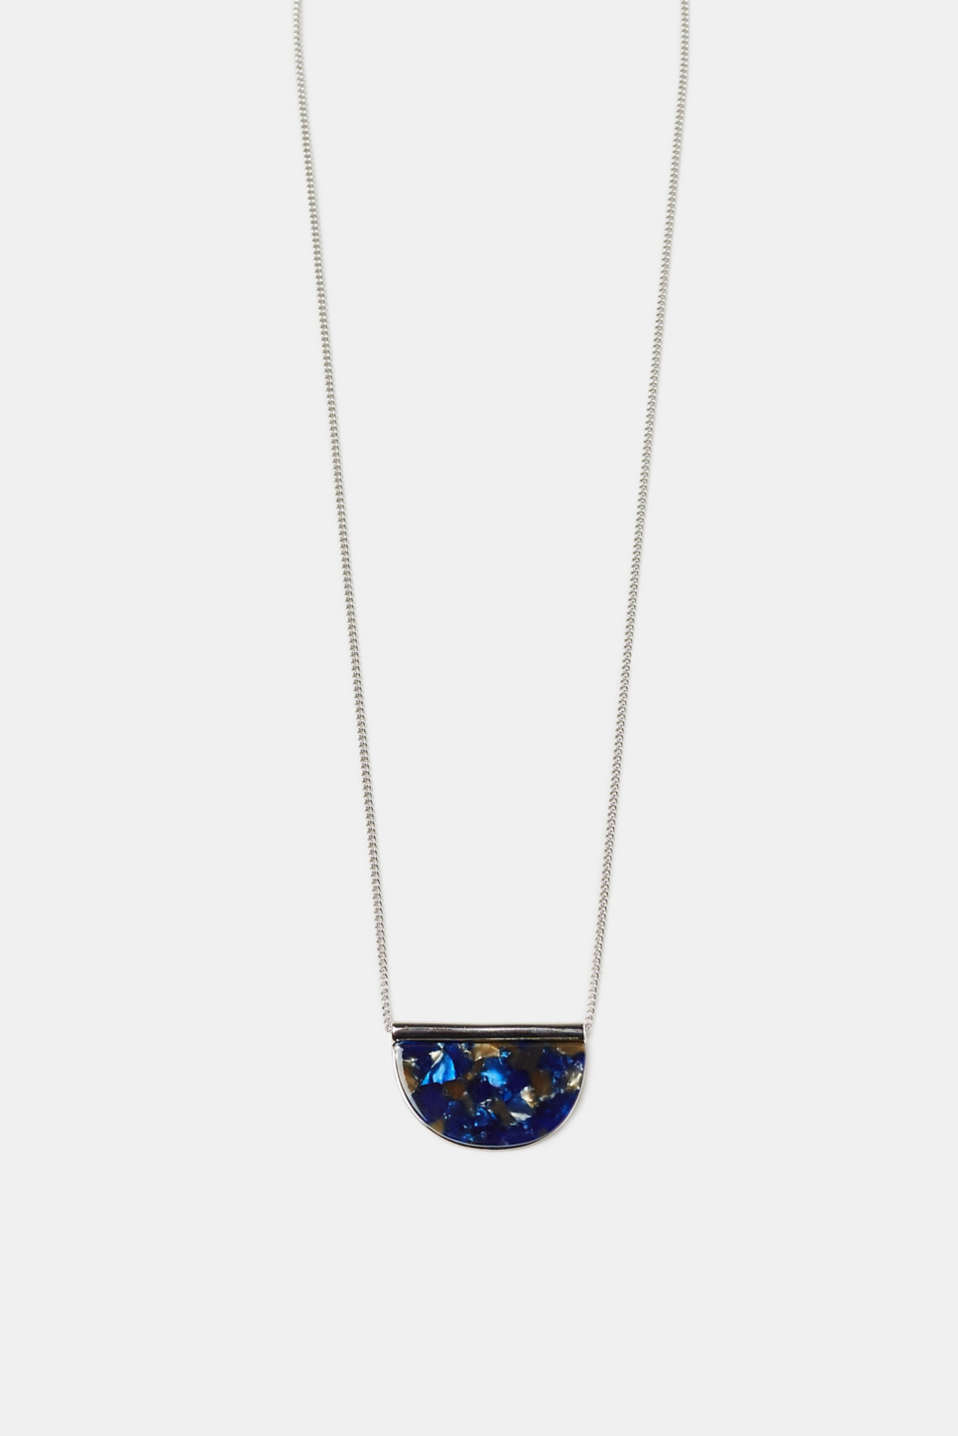 Esprit - Necklace with a pendant resembling a gemstone